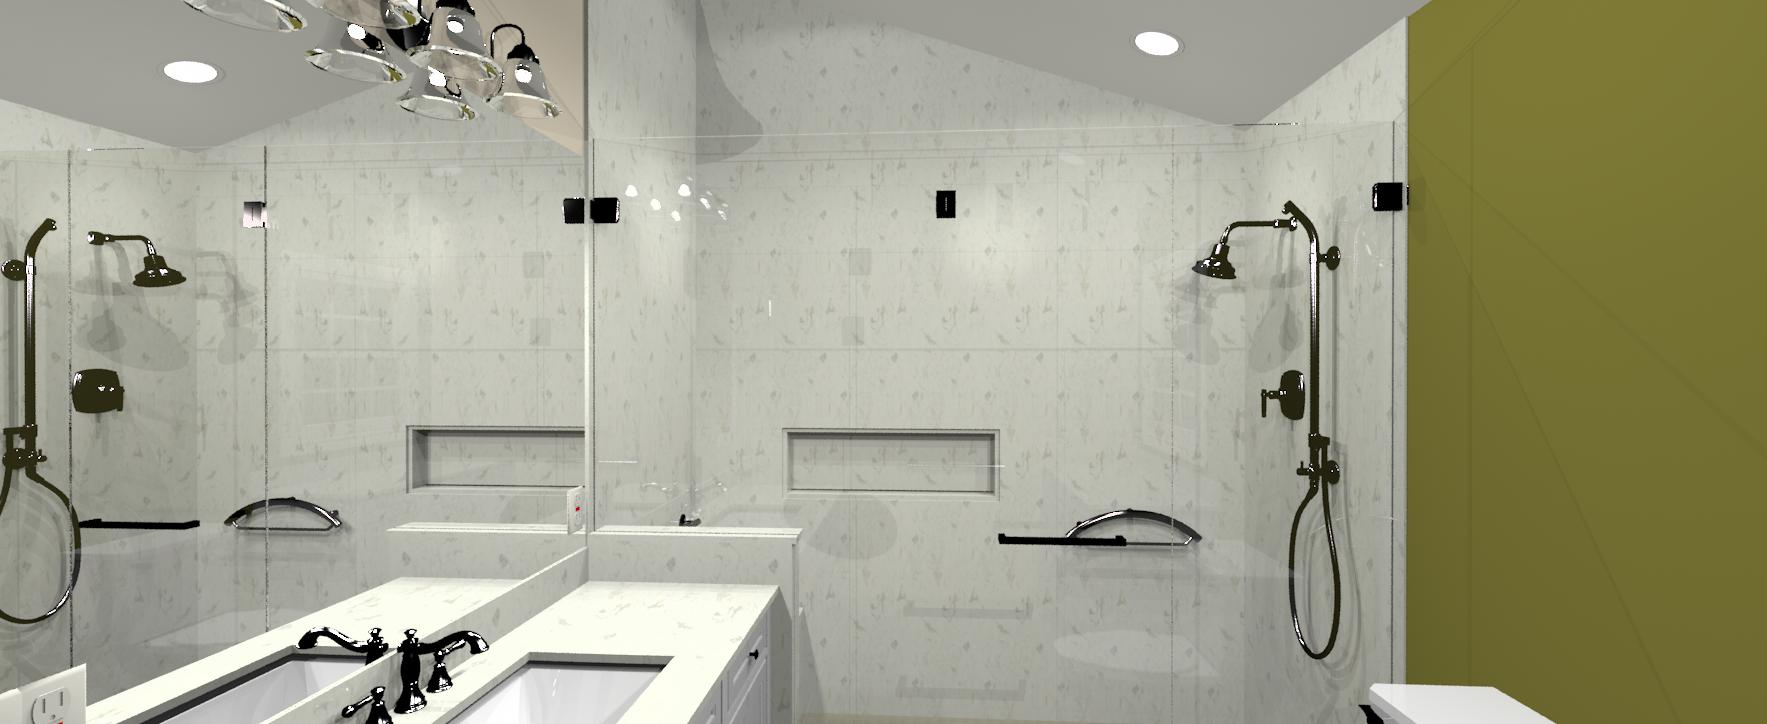 Bathroom Remodeling | Gordon Reese Design Build | Walnut Creek CA